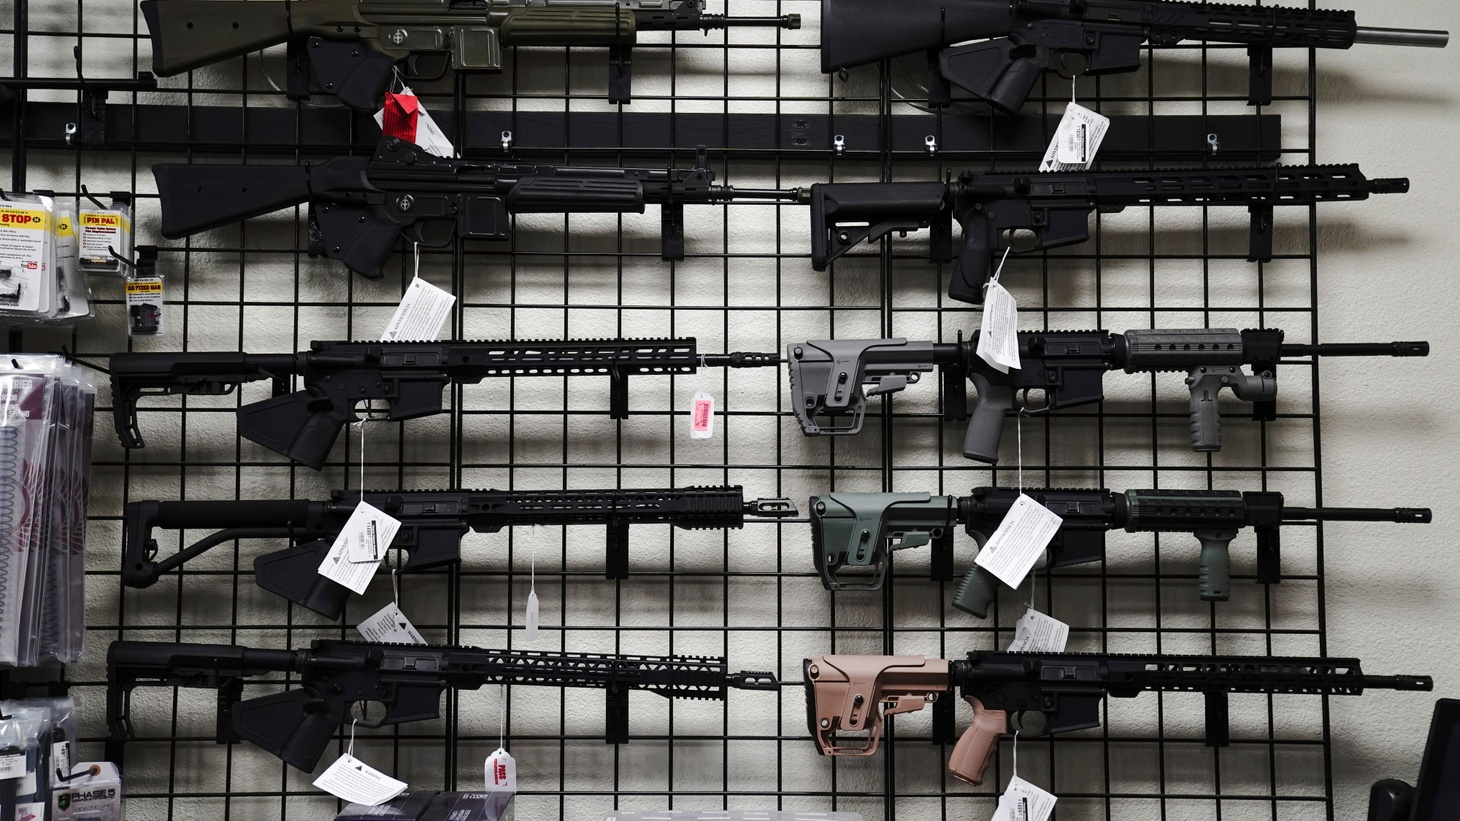 AR-15 style rifles are displayed for sale at Firearms Unknown, a gun store in Oceanside, California, U.S., April 12, 2021.